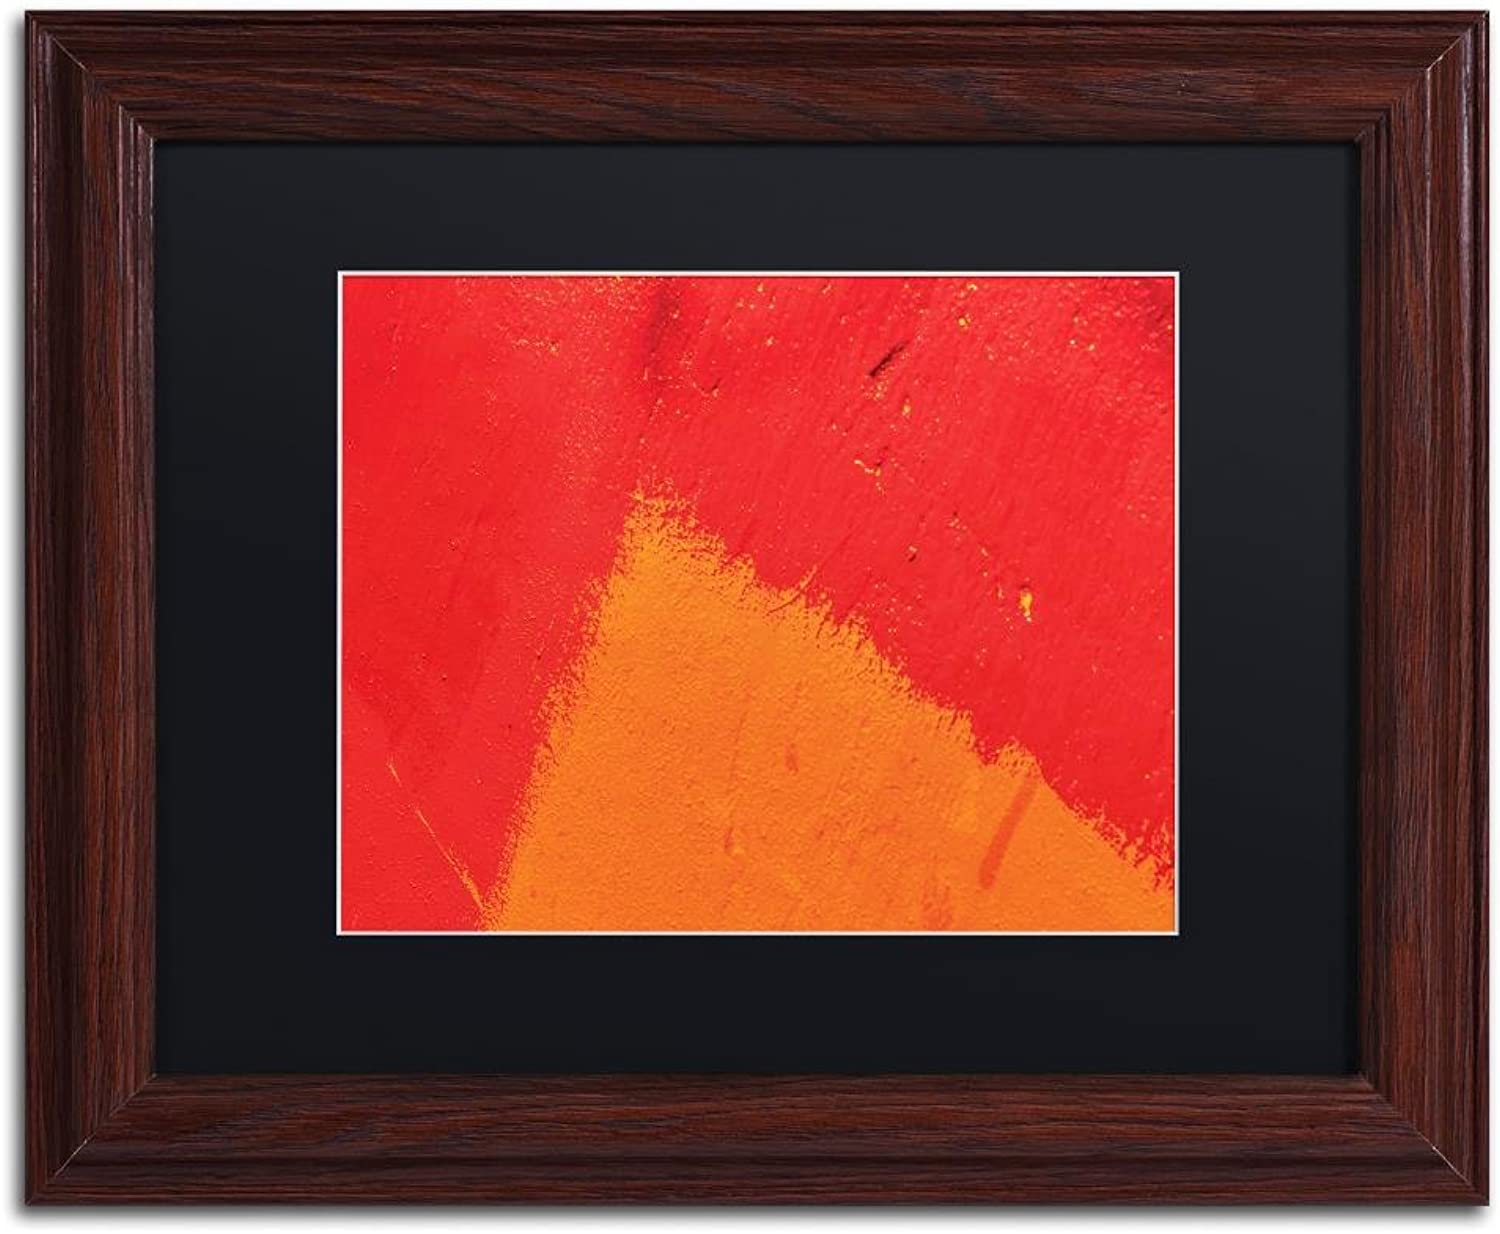 Trademark Fine Art Abstract orange Triangle by Claire Doherty, Black Matte, Wood Frame 11x14